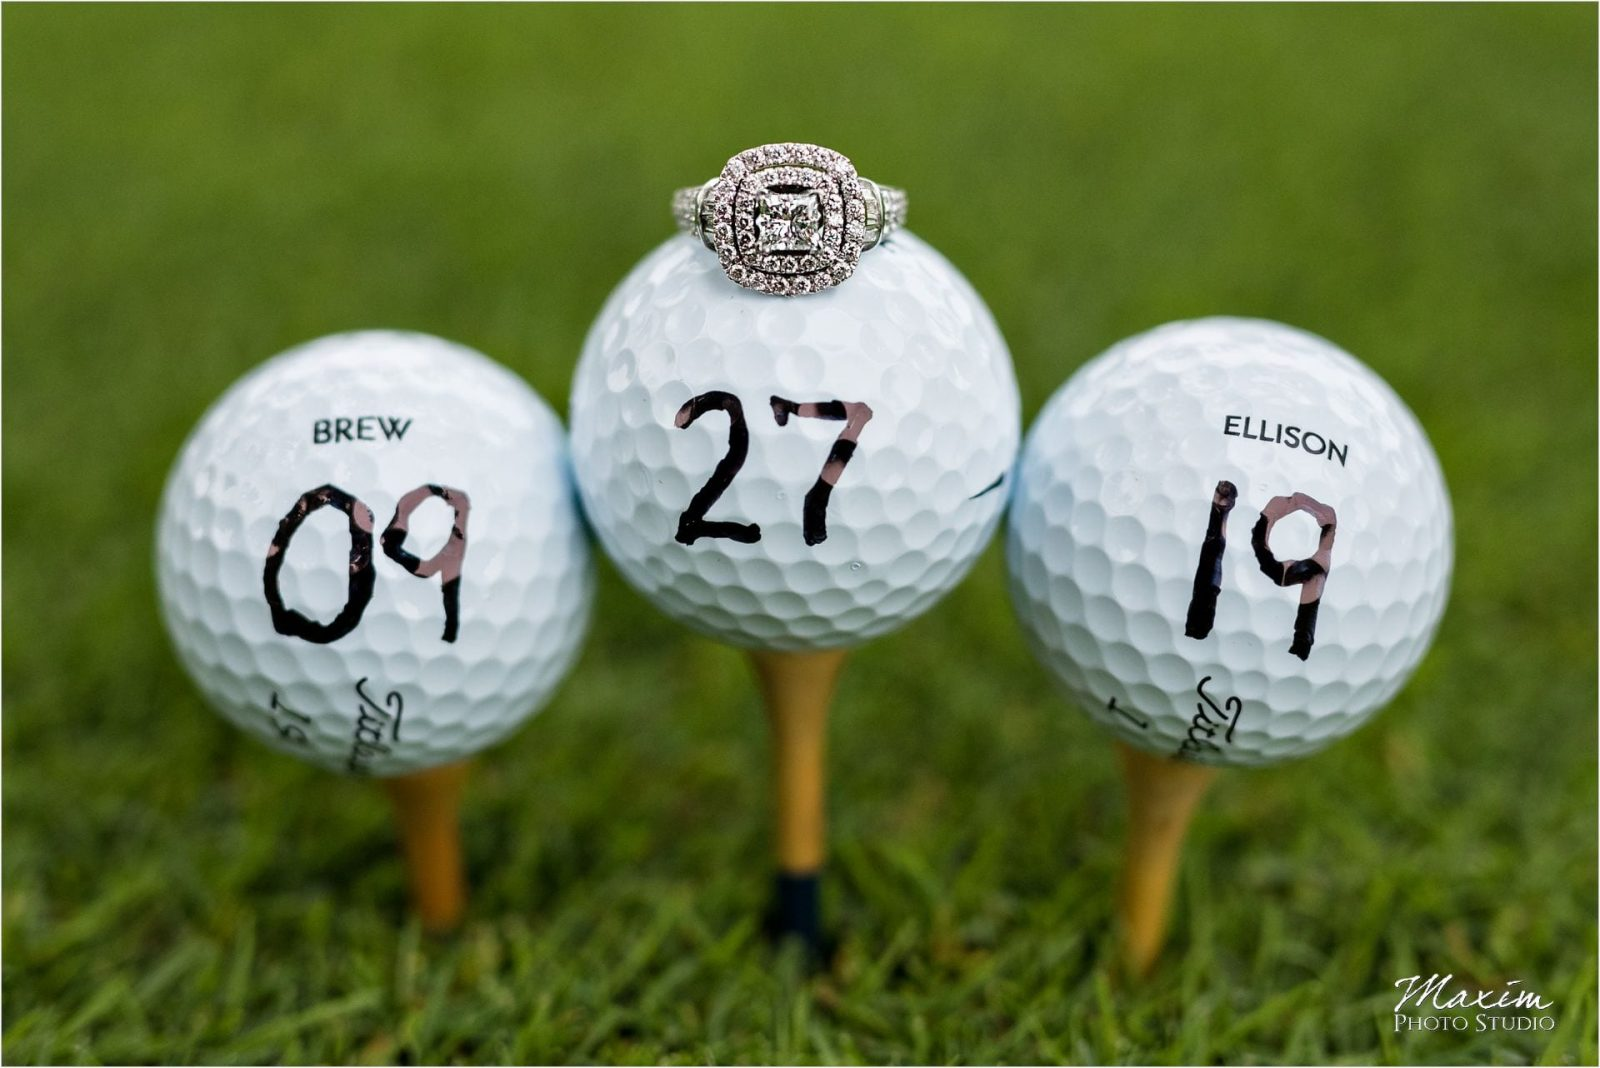 Wedding Rings golf ball, Cincinnati Country Club, Golf Engagement